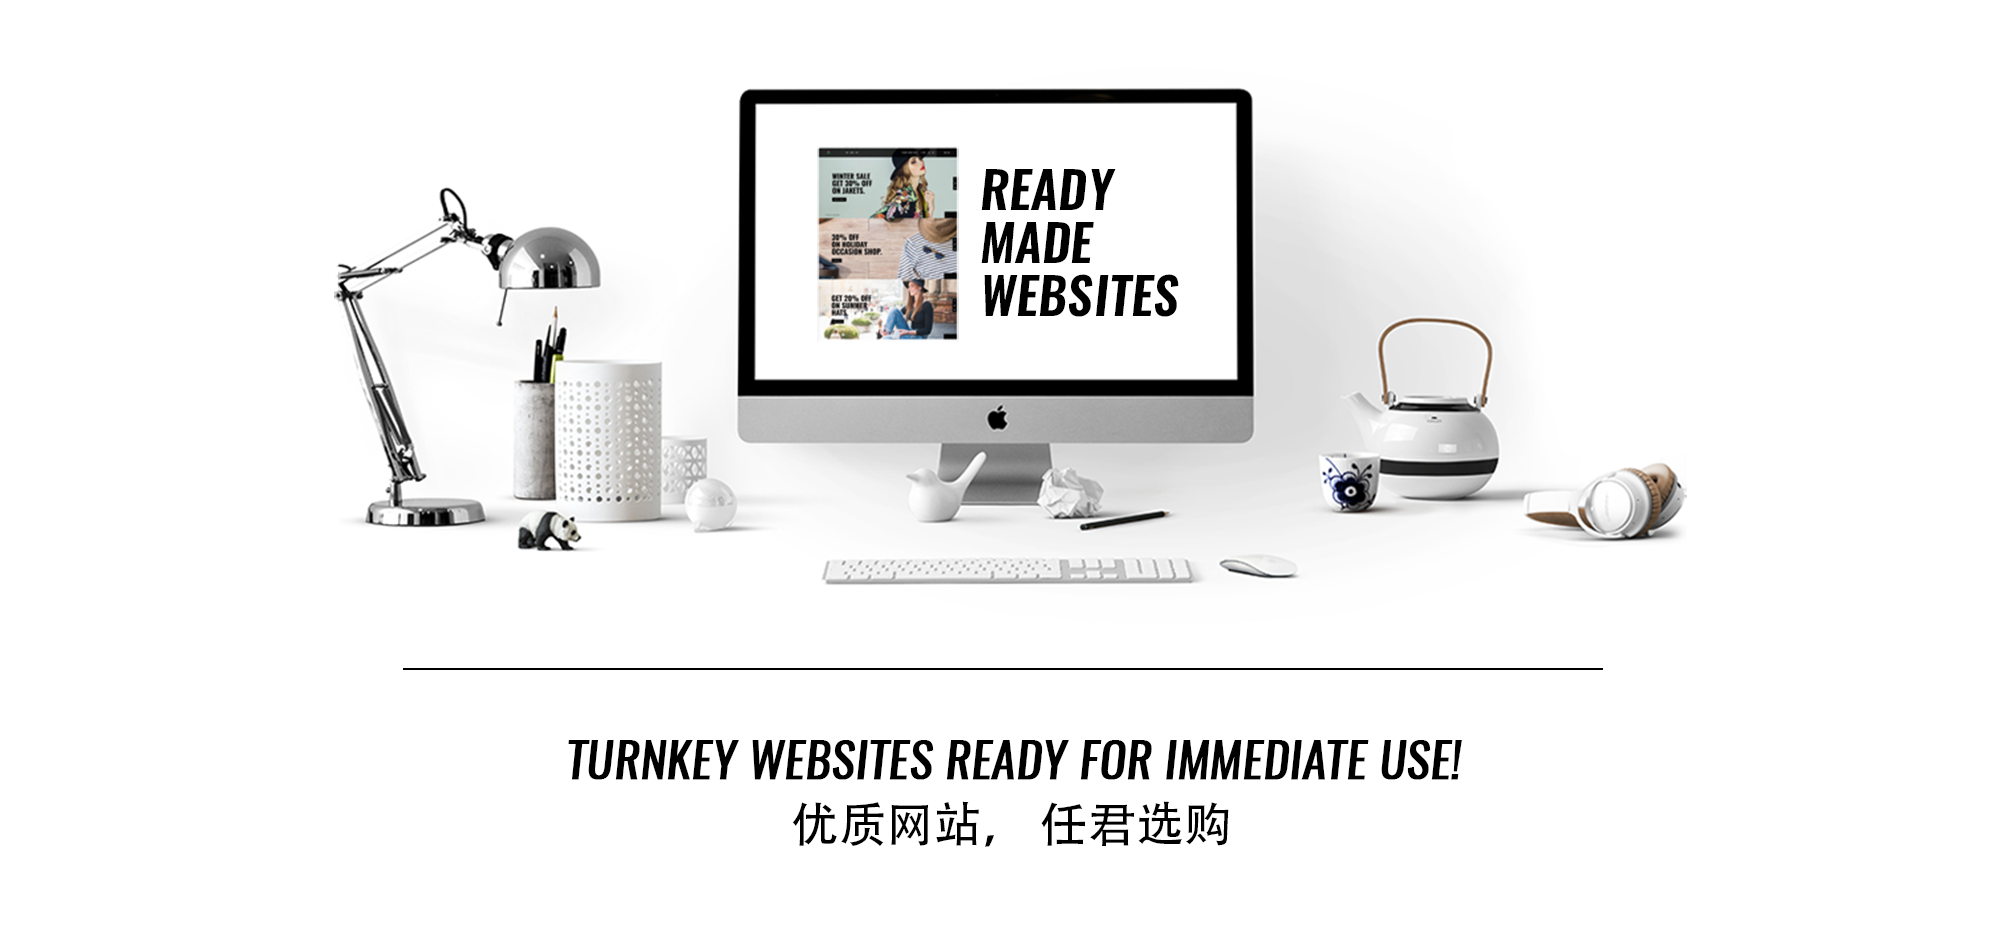 Ready-Made Websites